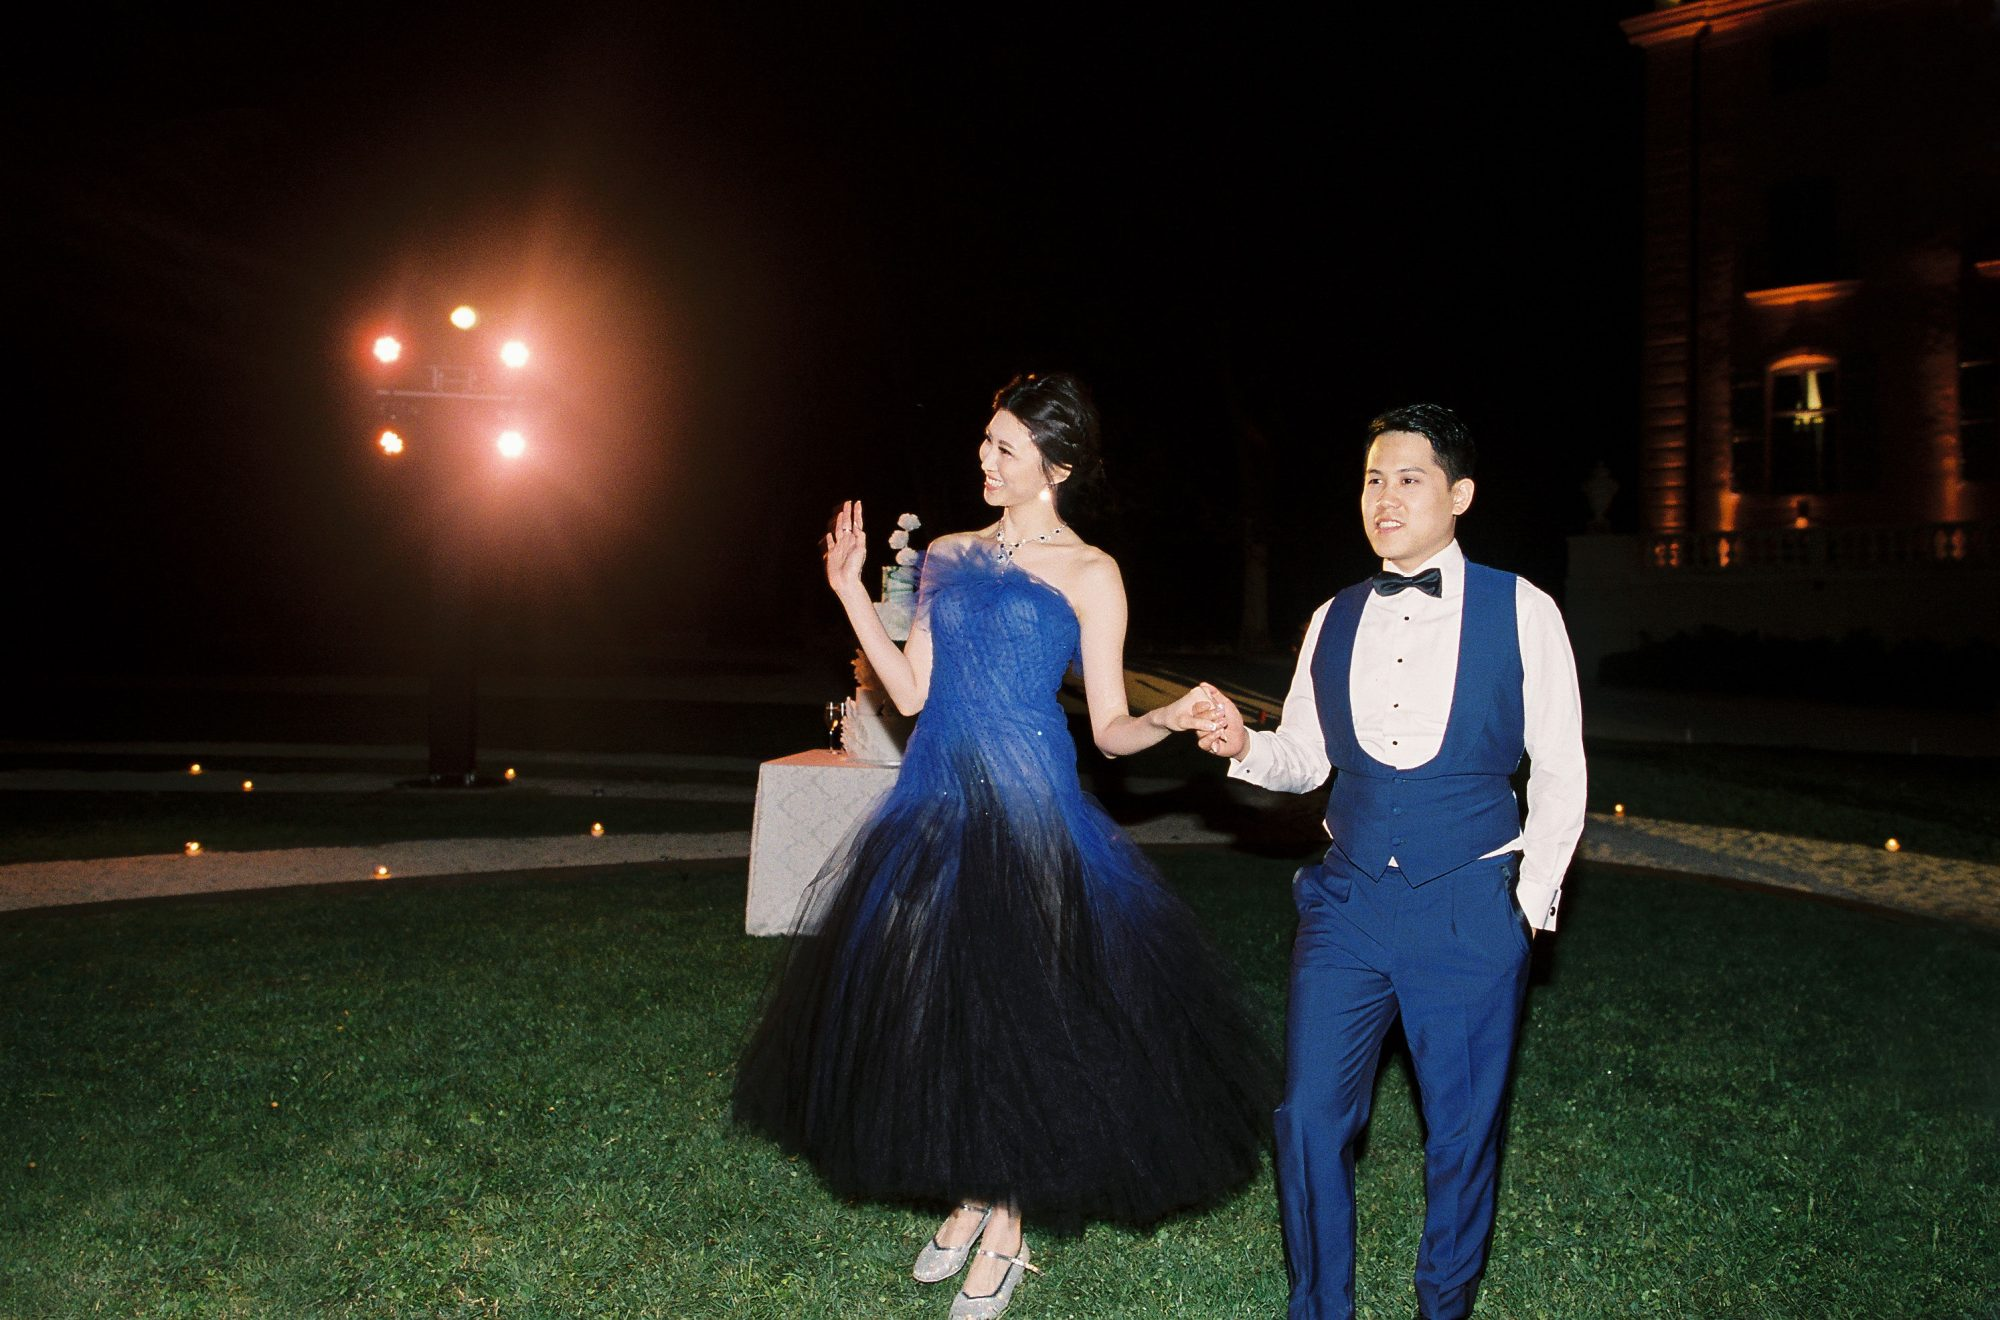 janet patrick wedding reception dress blue